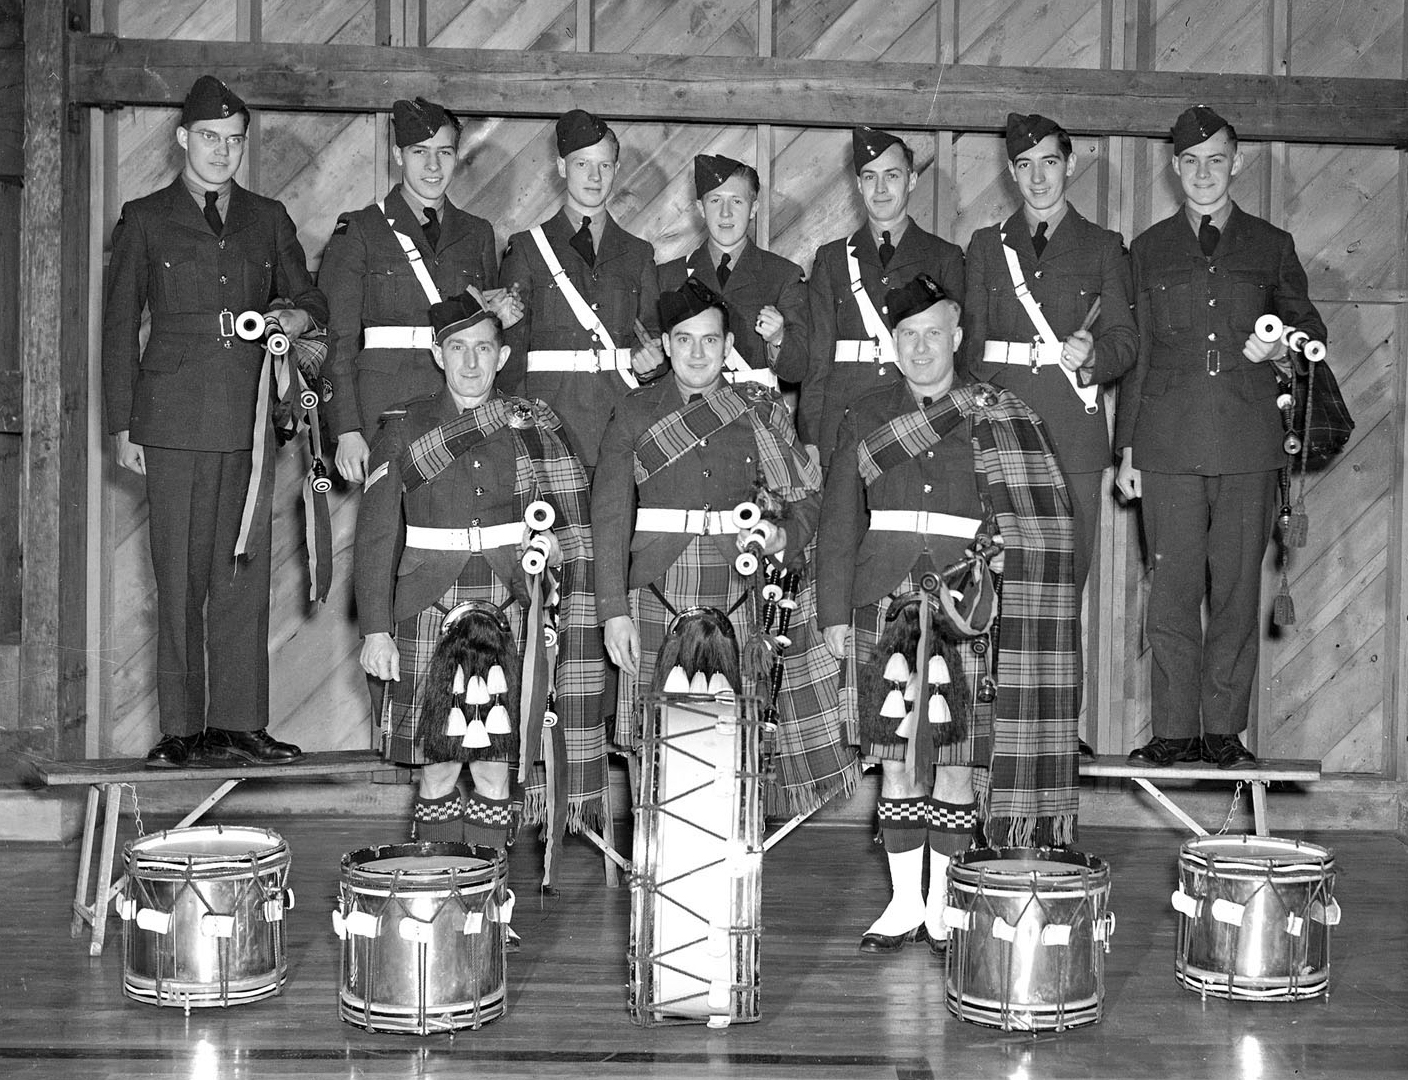 """The young pilots it produces for the Royal Canadian Air Force is one source of pride at No. 9 Service Flying Training School, Centralia, Ont., but the station is also rightly proud of its pipe band. The organization at present comprises five drummers and seven pipers under the direction of Pipe Major, Corporal James Ross of London, Ontario, who has been playing the pipes for 15 years. President of the pipe band is Flying Officer C.A. Finley of Meaford, Ontario, and Warrant Officer Class 1 G.D. Taylor of Toronto is the secretary. In this picture are shown (in the front row from left to right) Pipe Major Corporal J. Ross, London, Ontario; Aircraftman Second Class K.A. Stuebing, Kitchener, Ontario; Aircraftman Second Class W.J. Mutch, Clinton, Ontario; (back row) Aircraftman Second Class L.J. Hutchison, Thamesford, Ontario; Aircraftman Second Class W.S. Stewart, Winnipeg, Aircraftman Second Class J. Graham, Winnipeg,; Aircraftman Second Class A.I. Russell, Winnipeg, Aircraftman Second Class J.S. Gair, Winnipeg,; Leading Aircraftman G. Fairlie, Windsor, Ont.; and Aircraftman Second Class H.A. Forgie, Winnipeg. Missing from the picture are Aircraftman Second Class T.A. Simpson, Winnipeg; and Leading Aircraftman H. Ince, Charlottetown, Prince Edward Island."" PHOTO: DND"